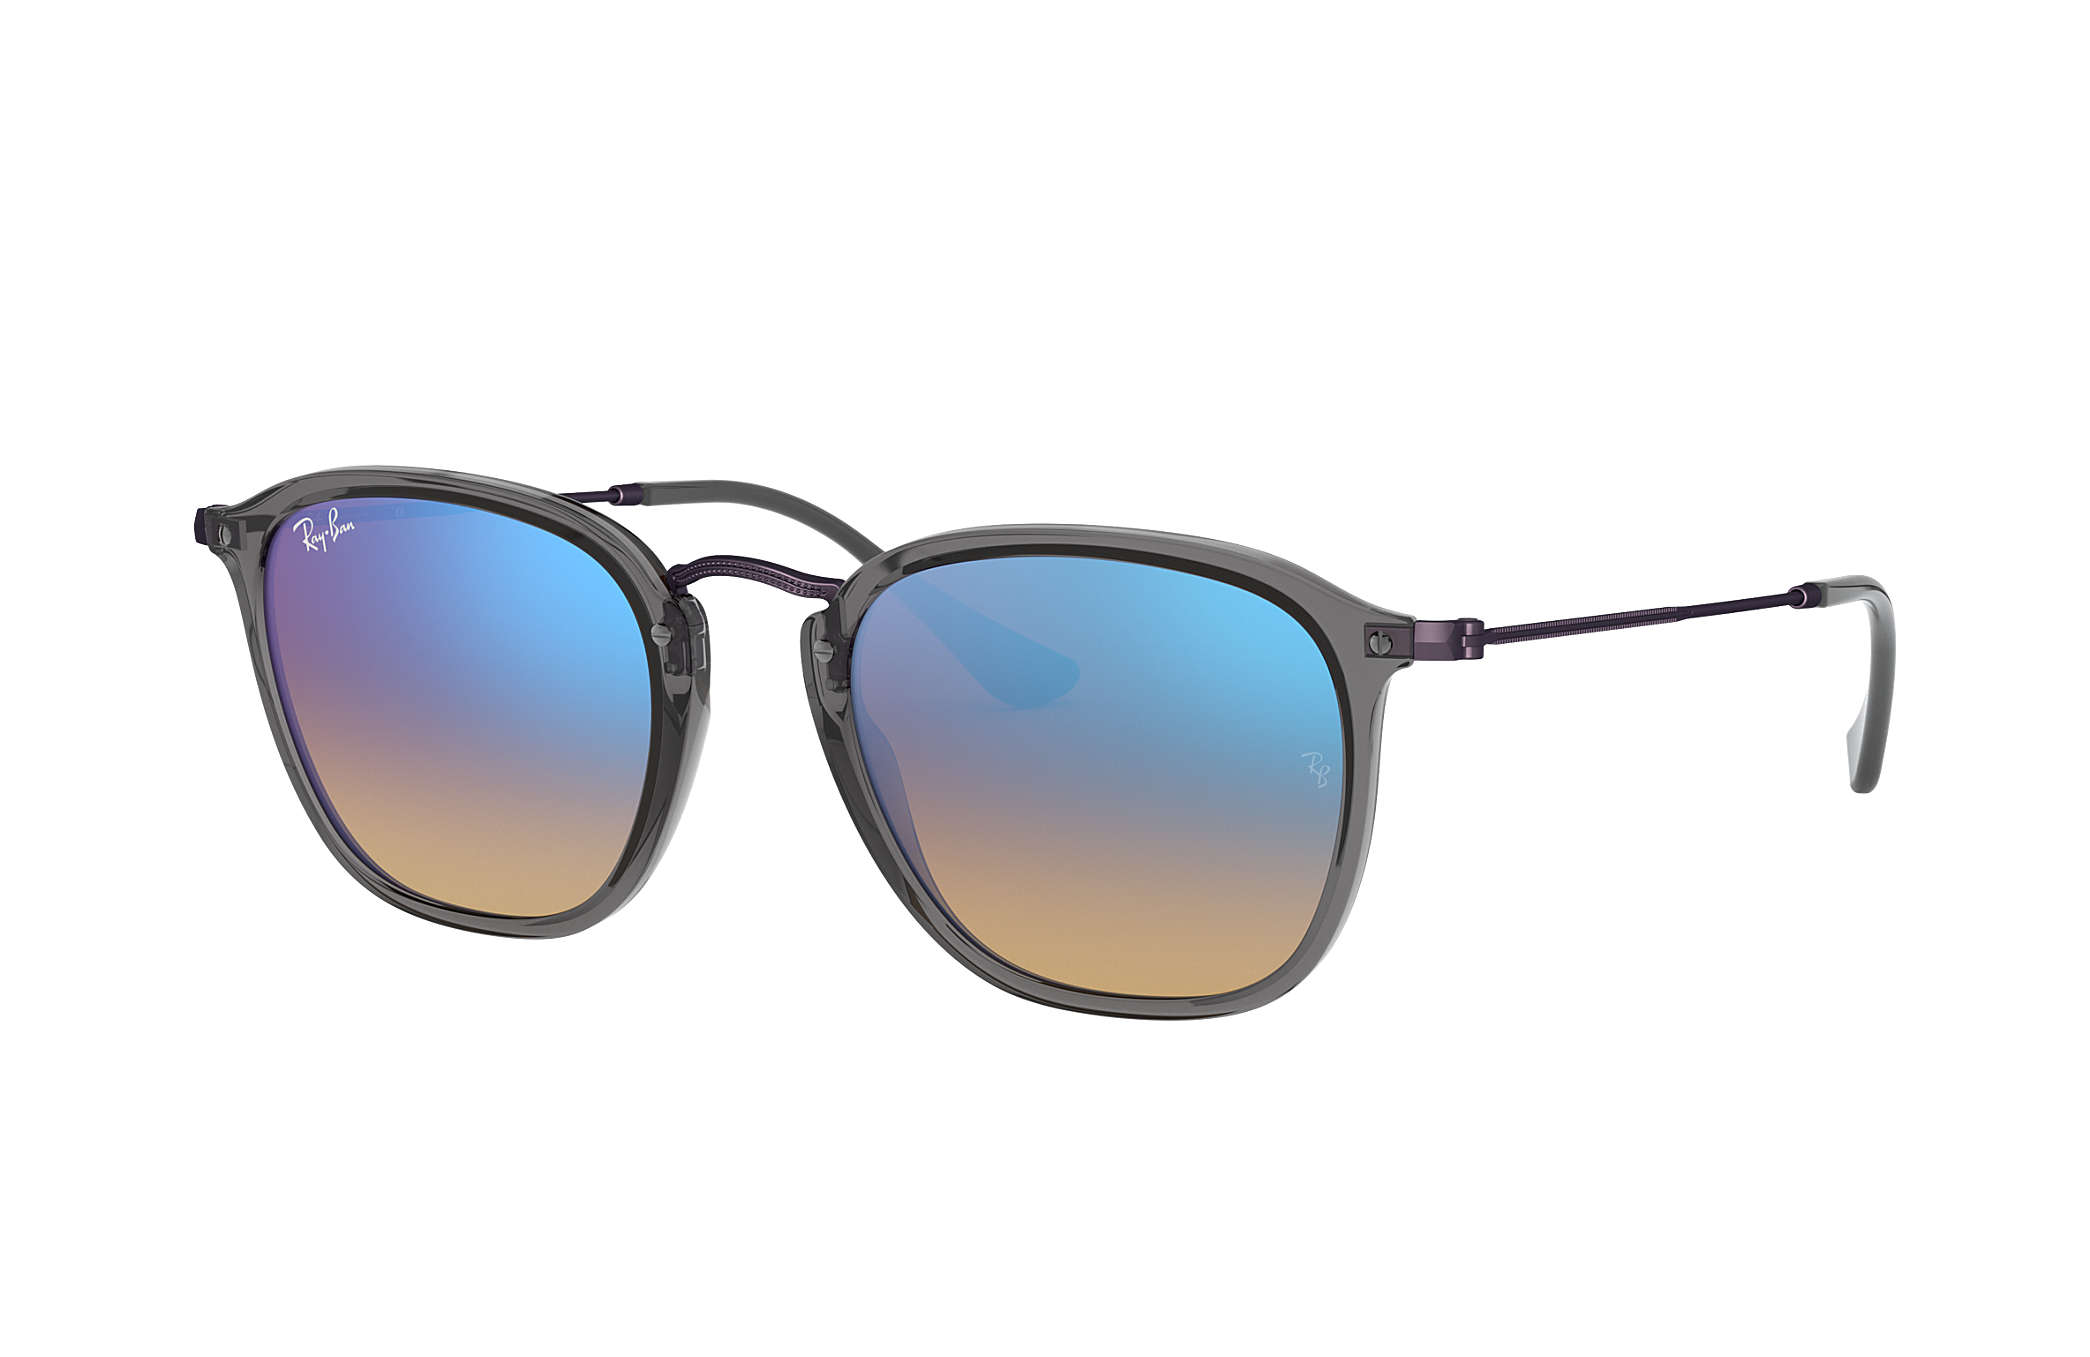 c85f94ae43 Ray-Ban RB2448N Grey - Acetate - Blue Lenses - 0RB2448N62554O51 ...